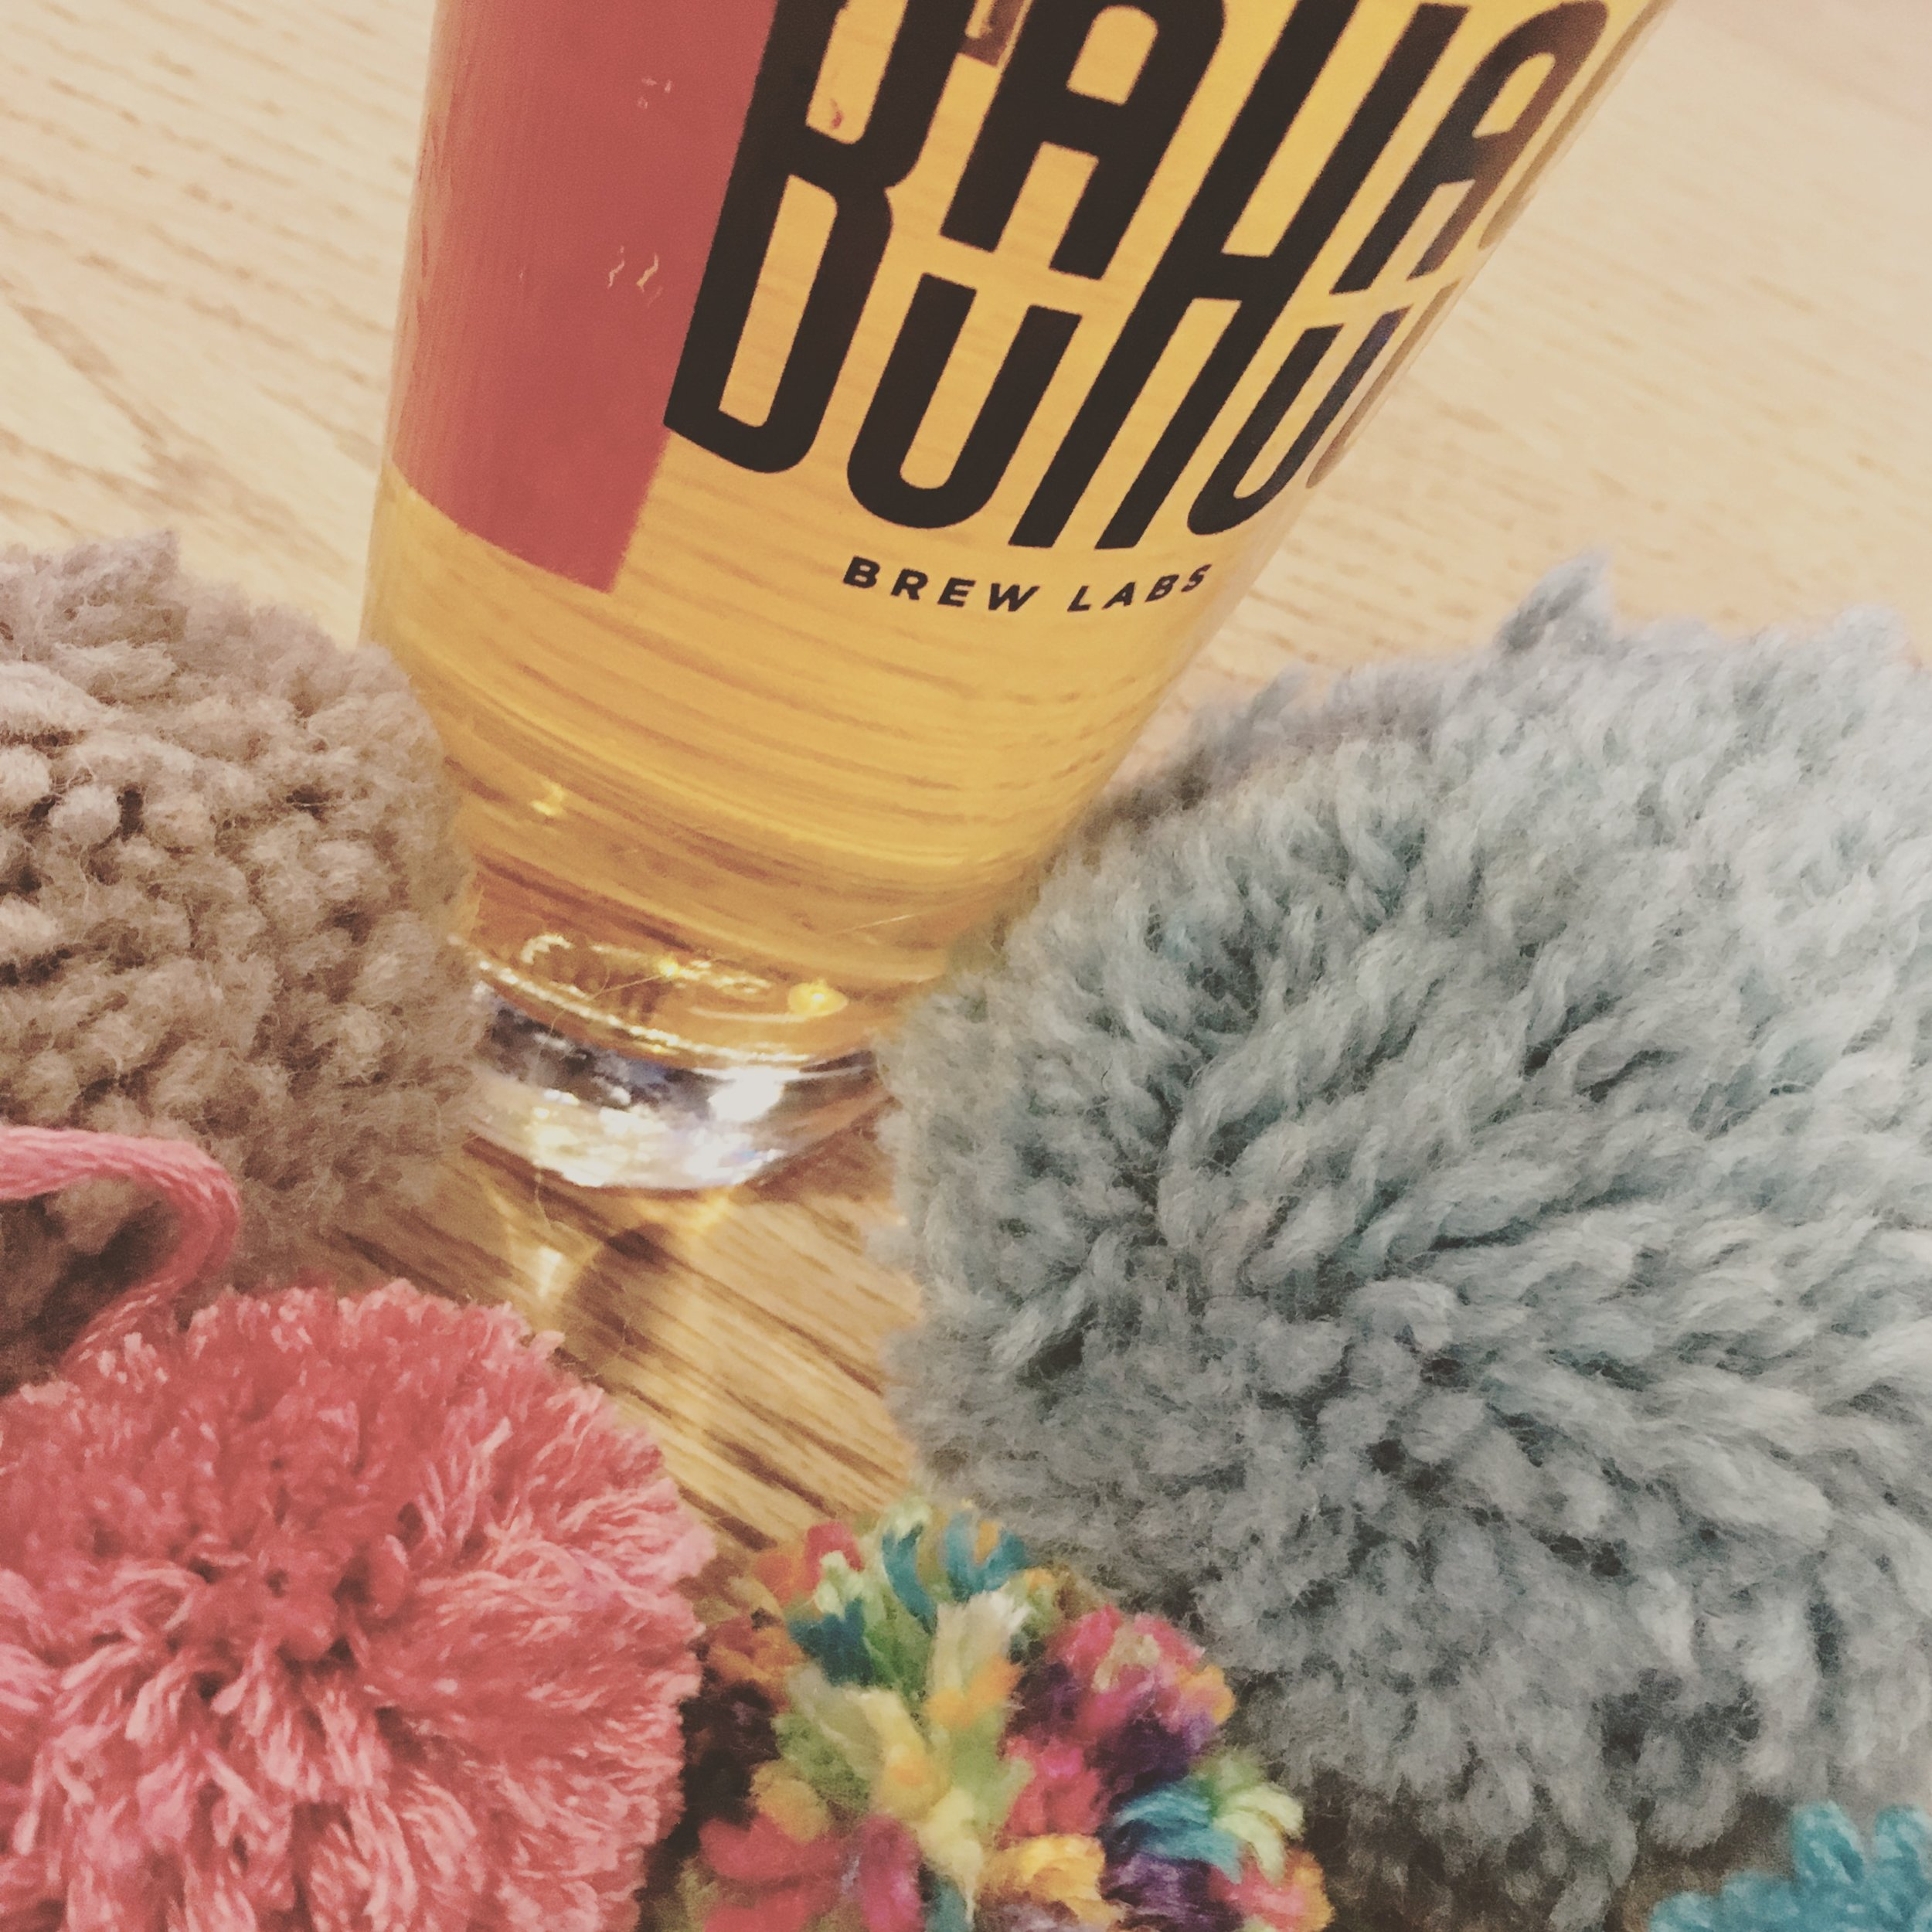 Craft beer and knitting? Yes! We also teach and provide supplies/inspiration for crochet, weaving, yarn spinning and jewelry making.